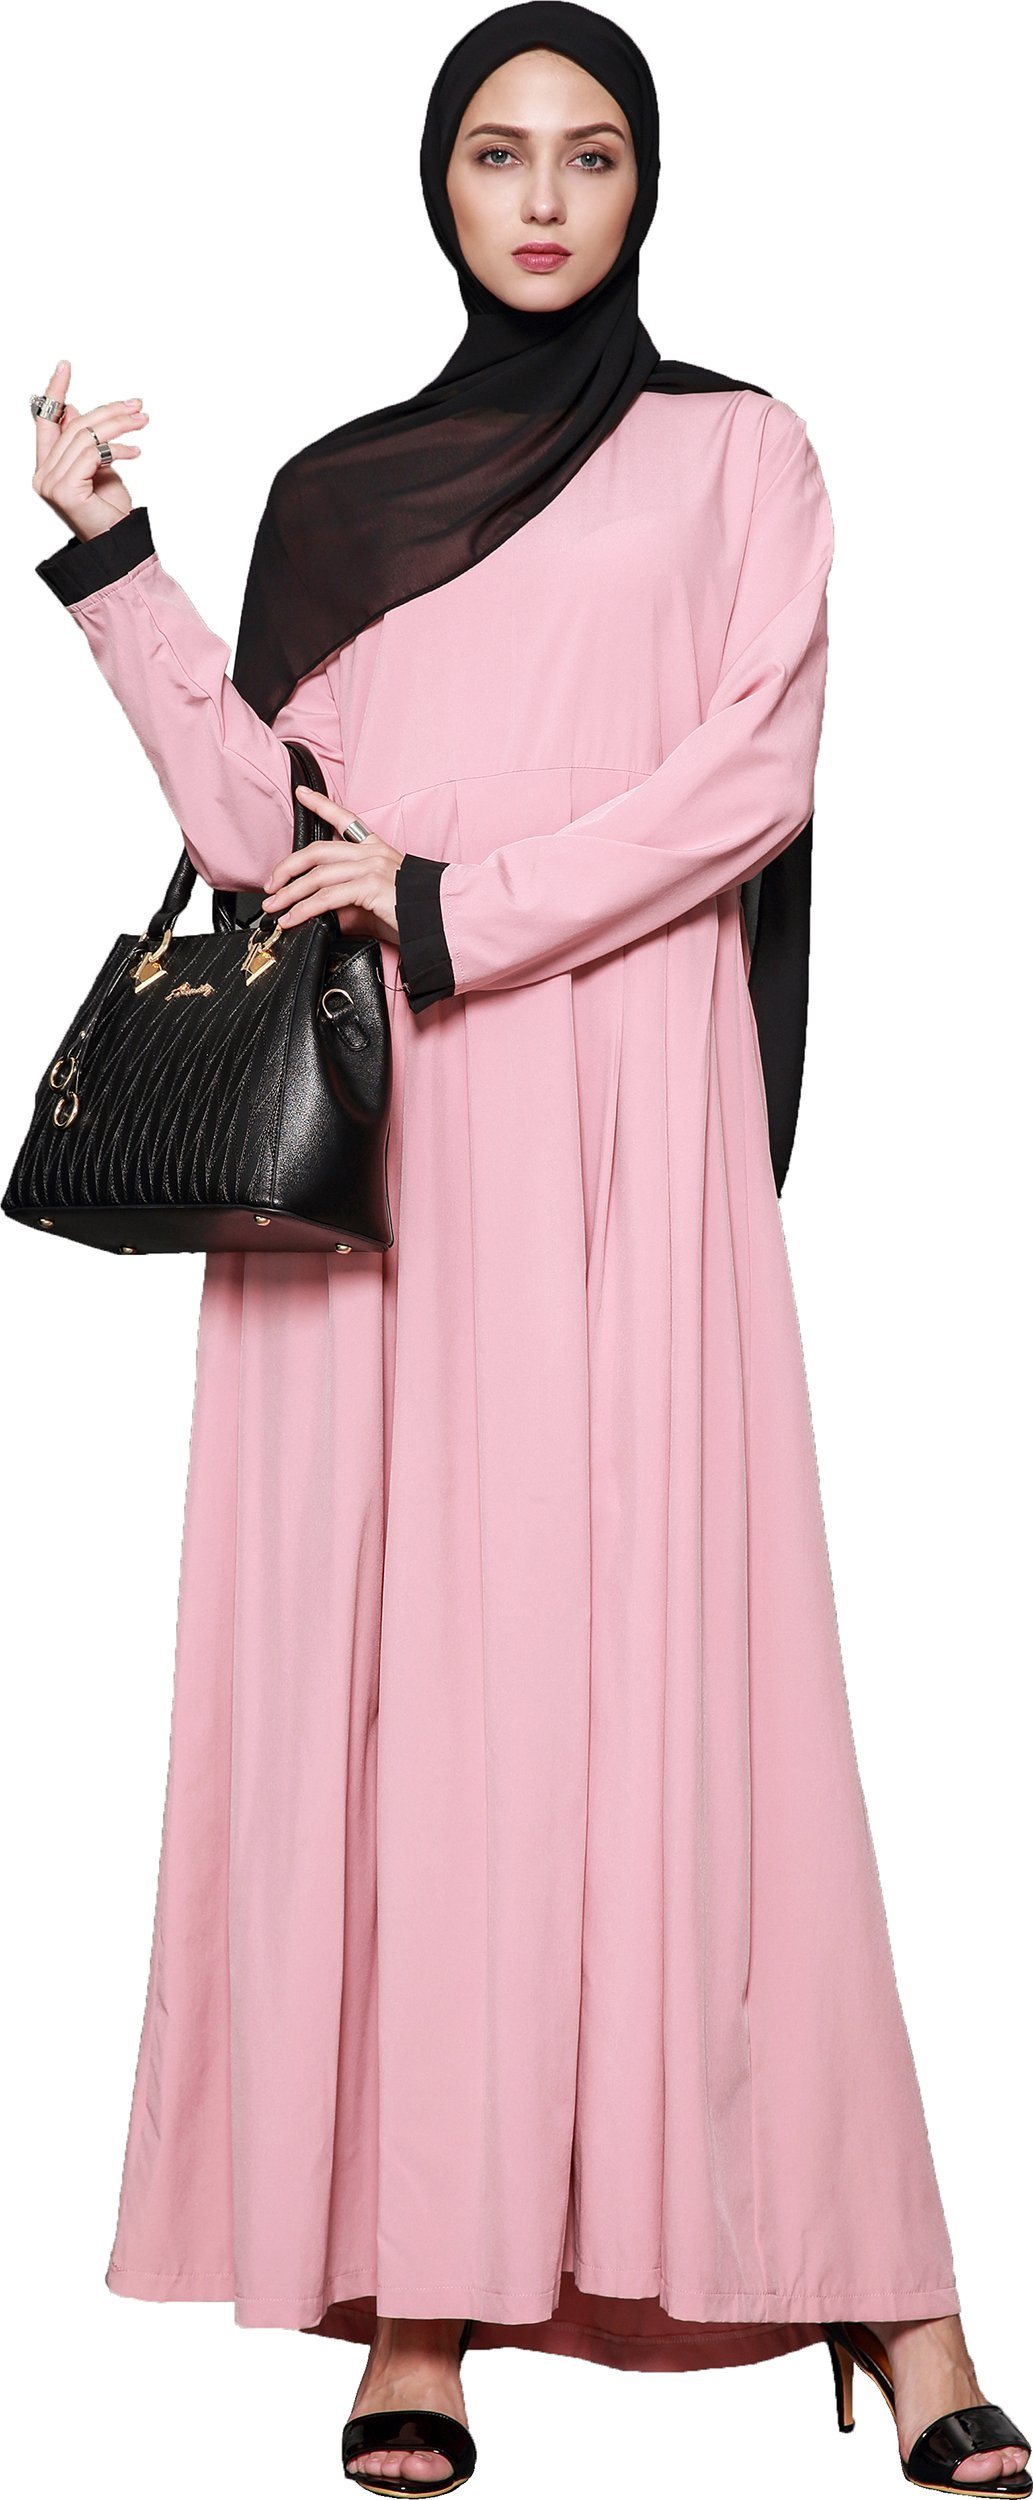 Ababalaya Women's Elegant Modest Muslim Full Length O-Neck Solid Pleated Runway Abaya S-4XL,Pink,Tag Size L = US Size 10-12